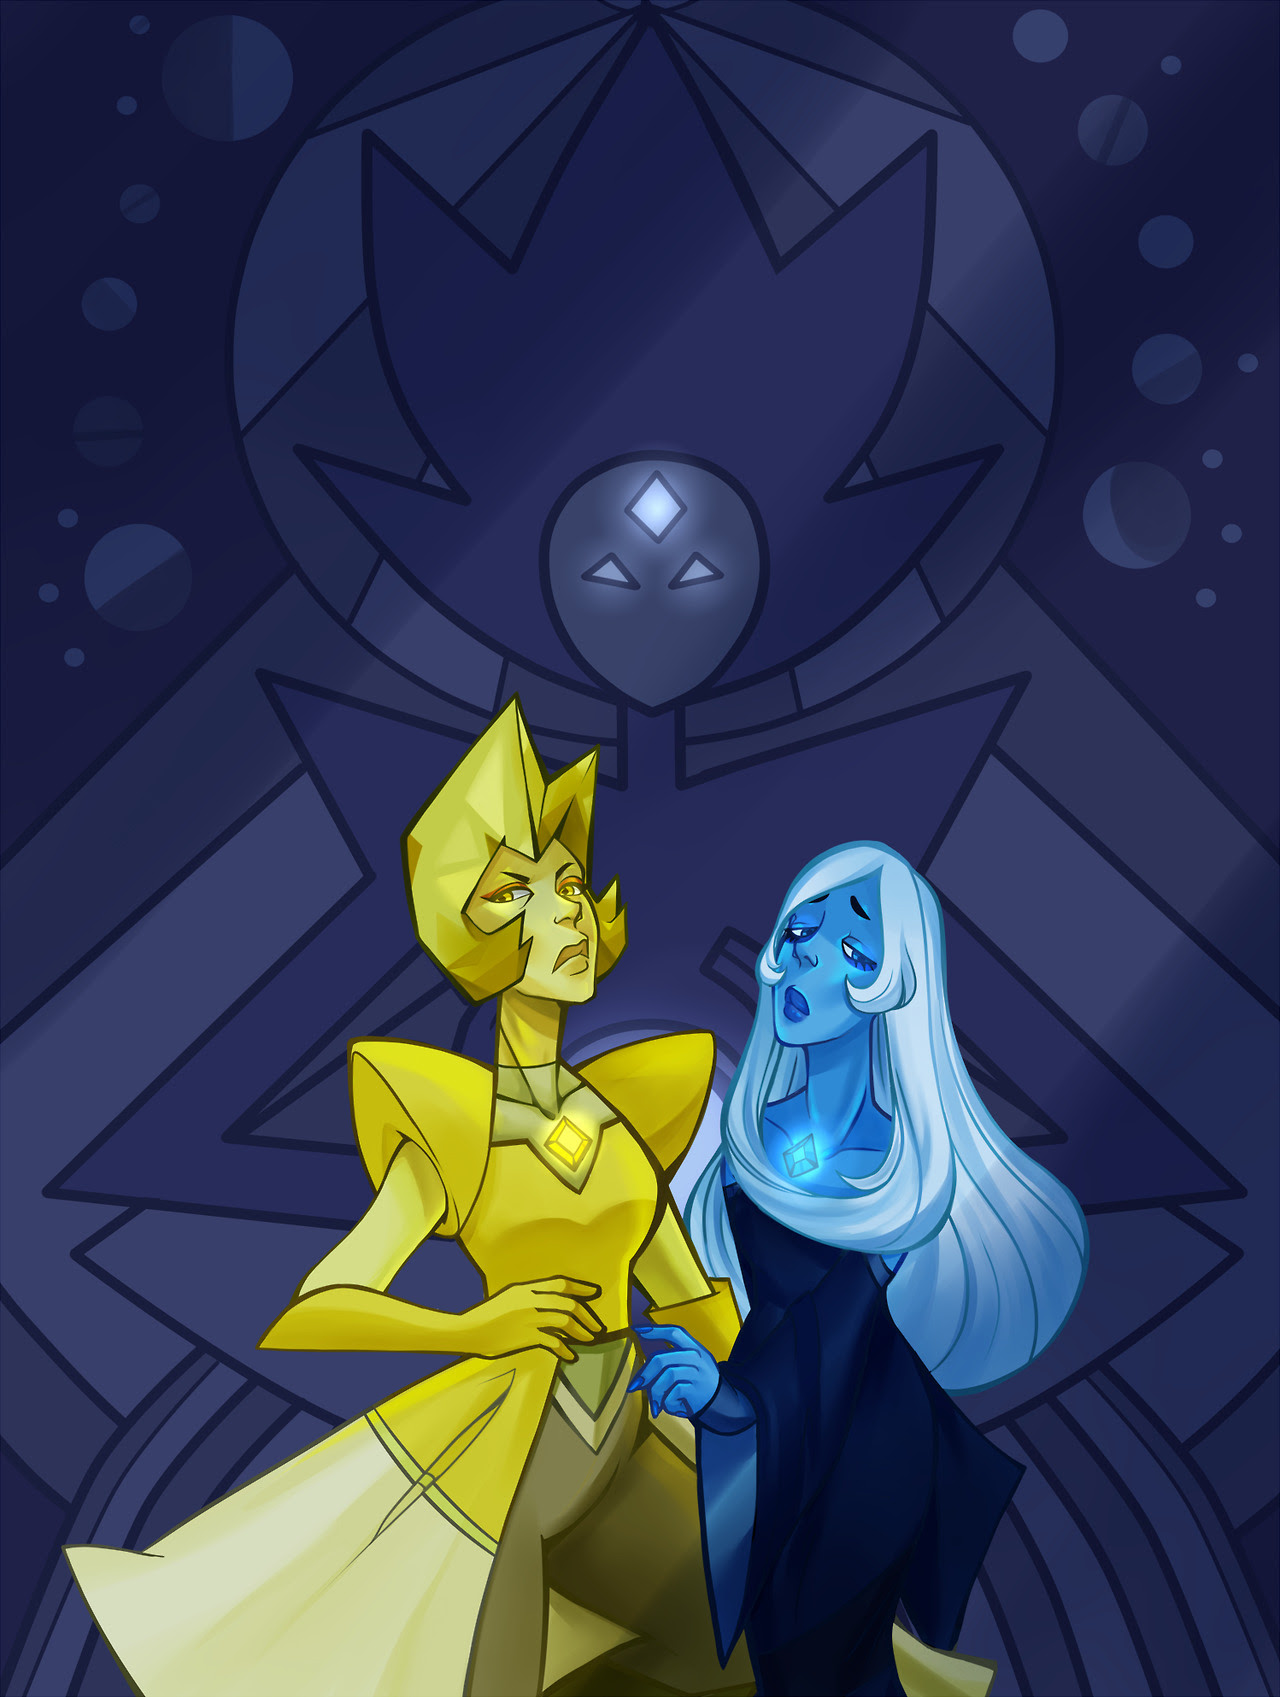 oh man the trial gave me some serious diamond hype!! they're quickly becoming some of my favorite characters tbh